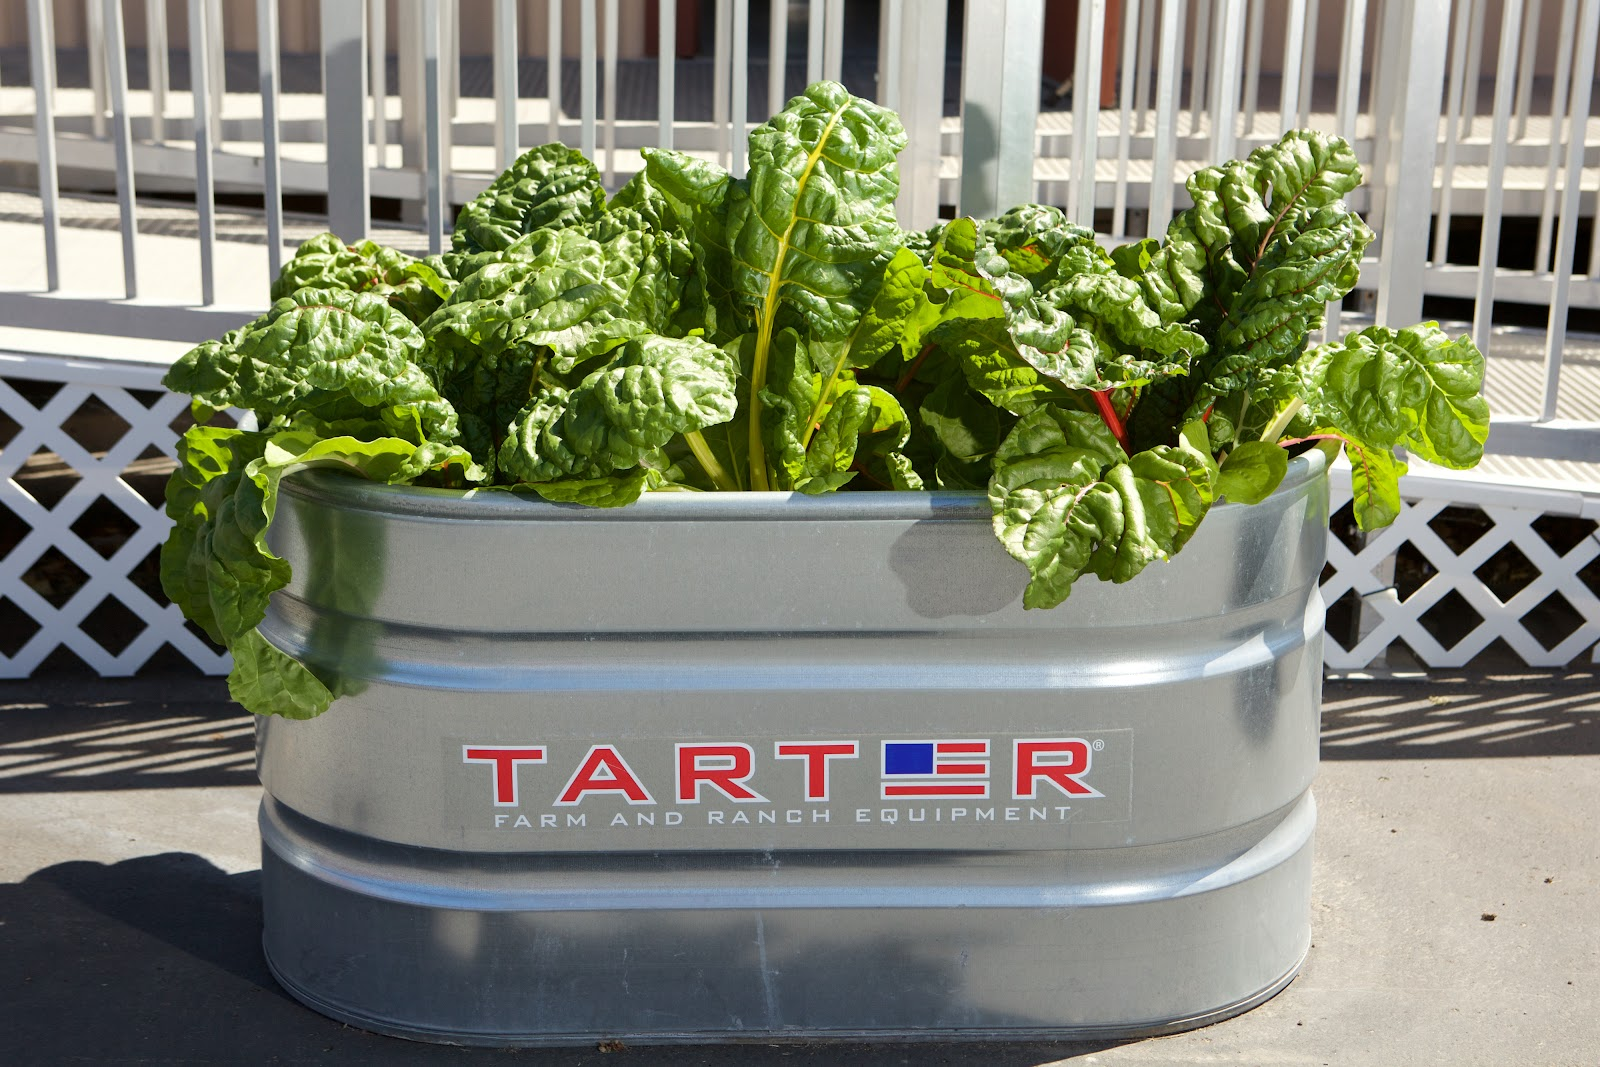 Image of large metal planter full of rainbow chard grown by Empower Language Academy students